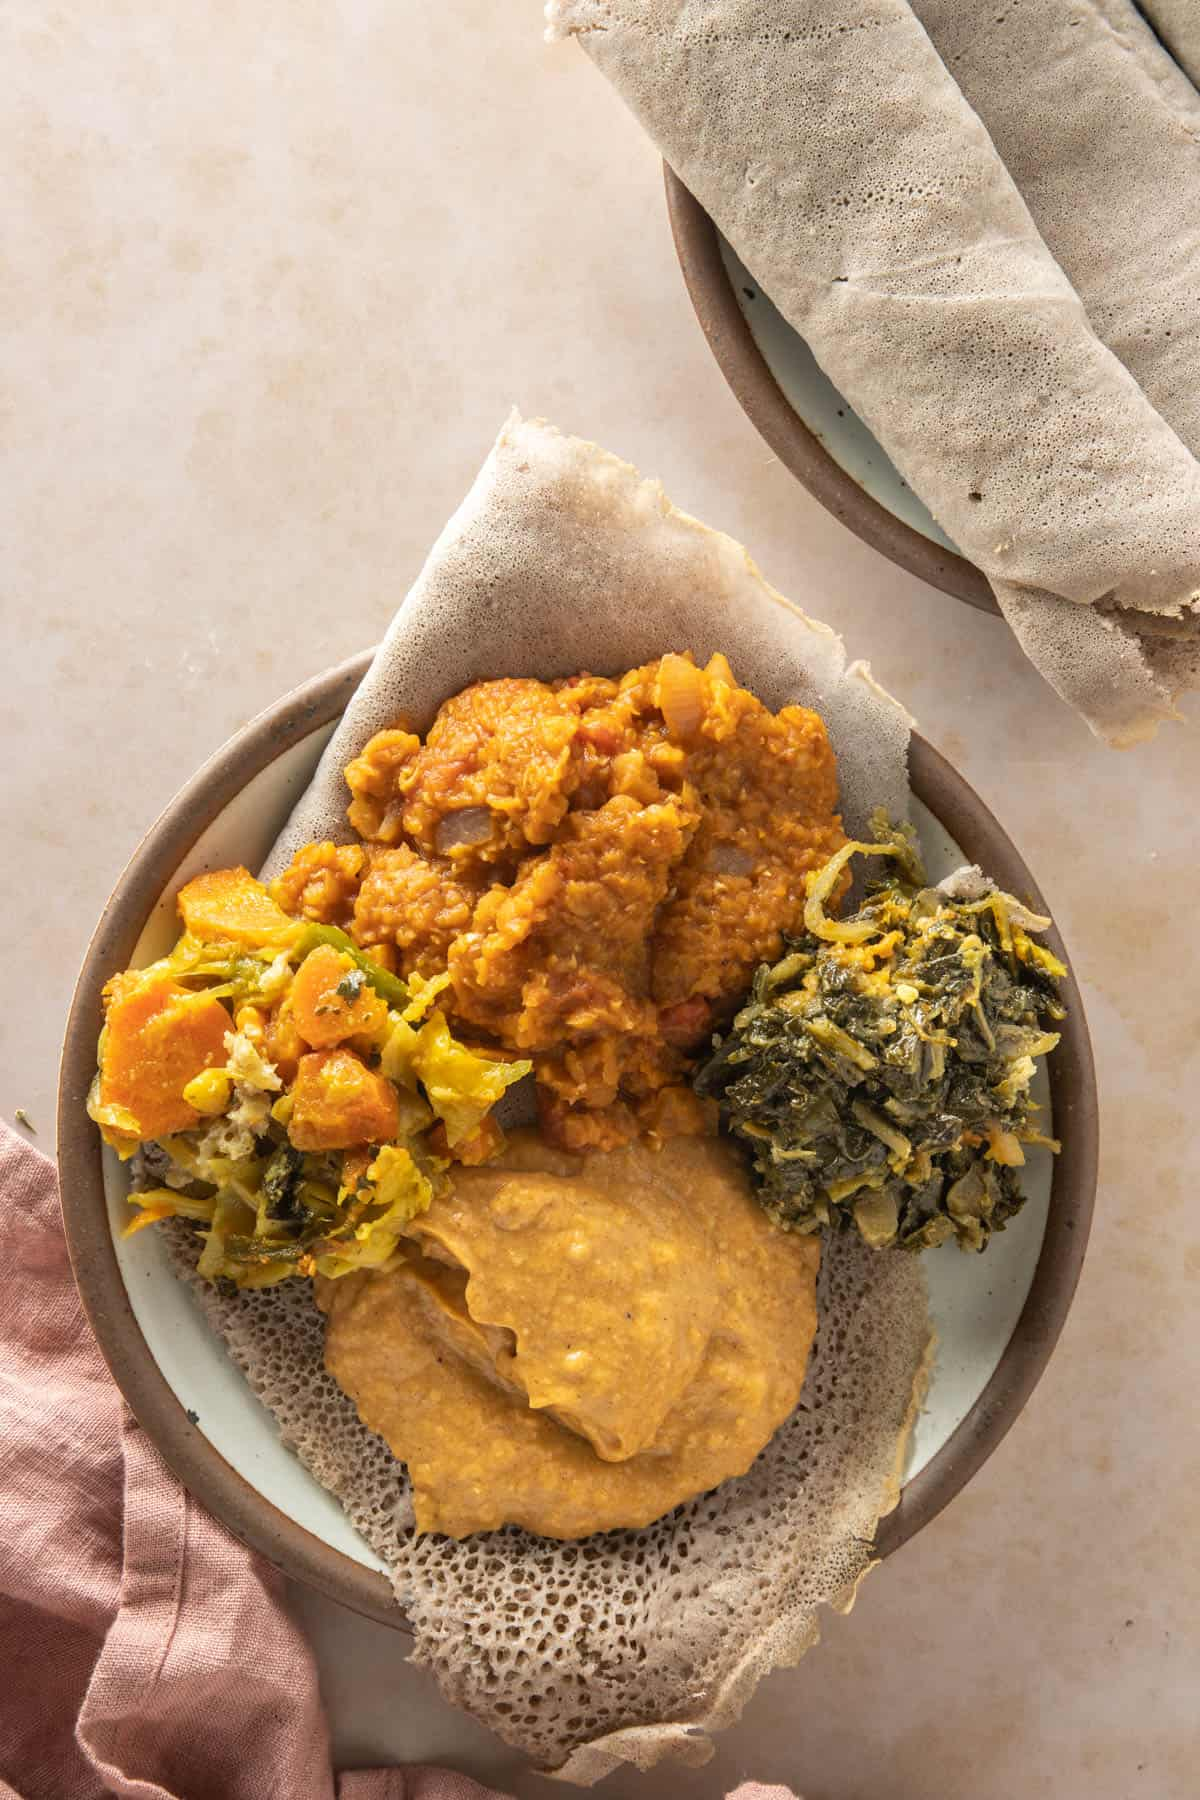 Plate of injera topped with different Ethiopian vegan dishes, including Misir Wot